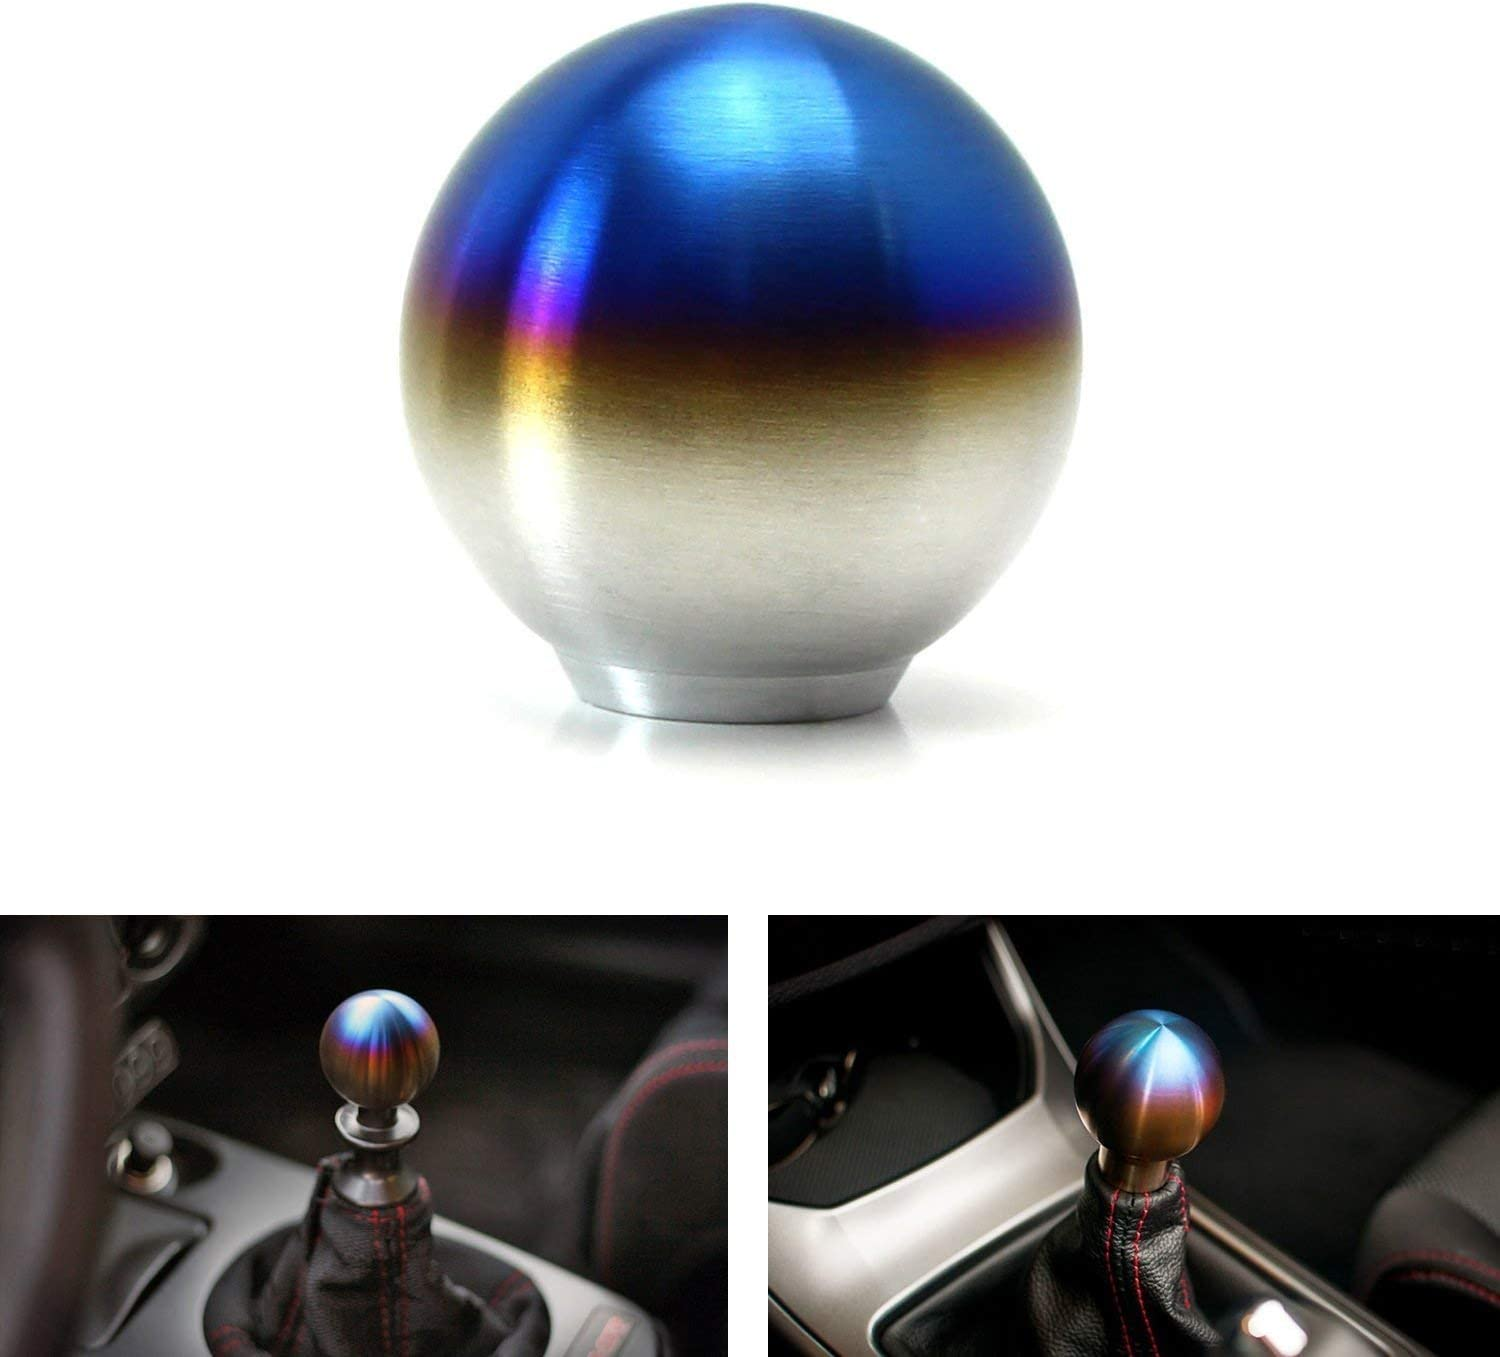 iJDMTOY Burnt Titanium Finish JDM Sphere Shift Knob Universal Fit Compatible With Most Car 4 5 6 Speed Manual or Automatic etc.